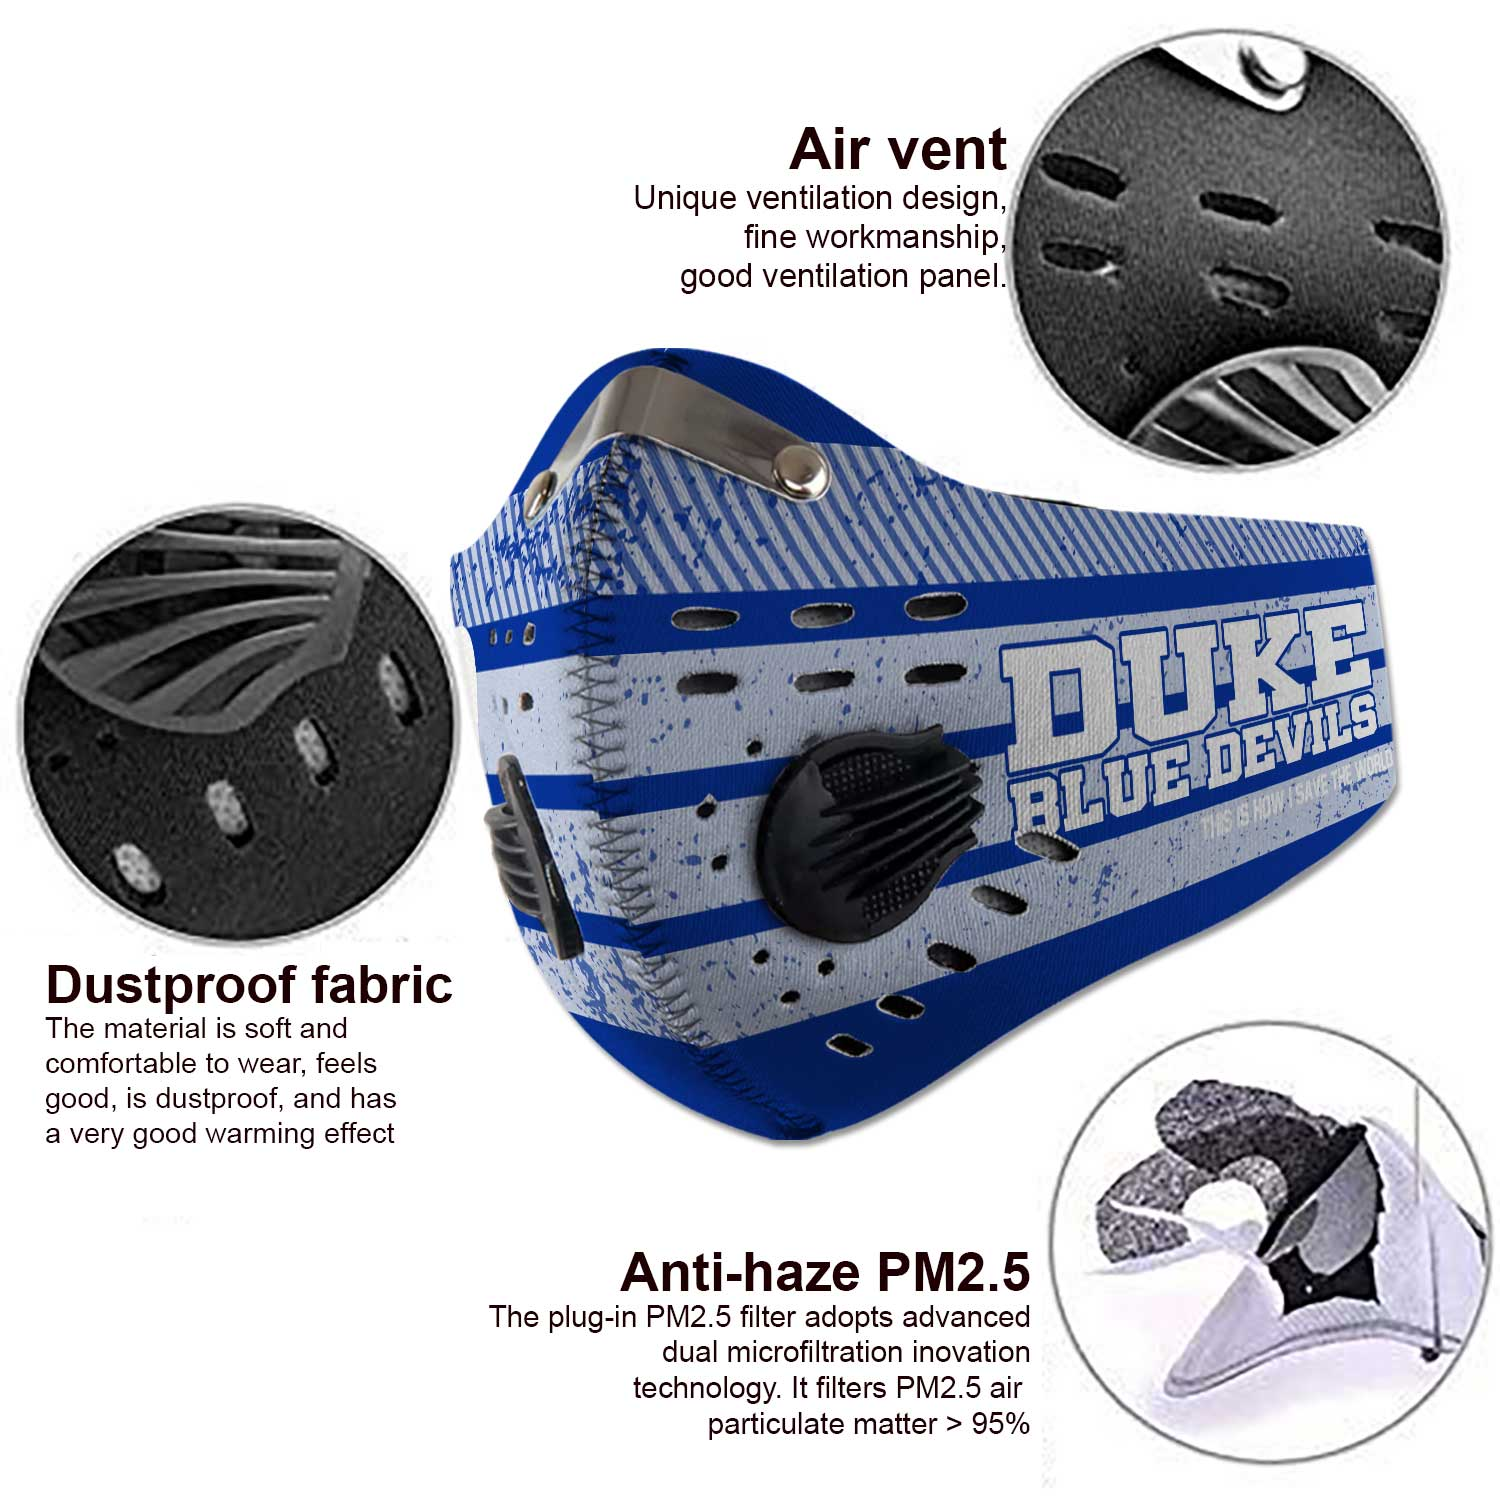 Duke blue devils men's basketball this is how i save the world face mask 3